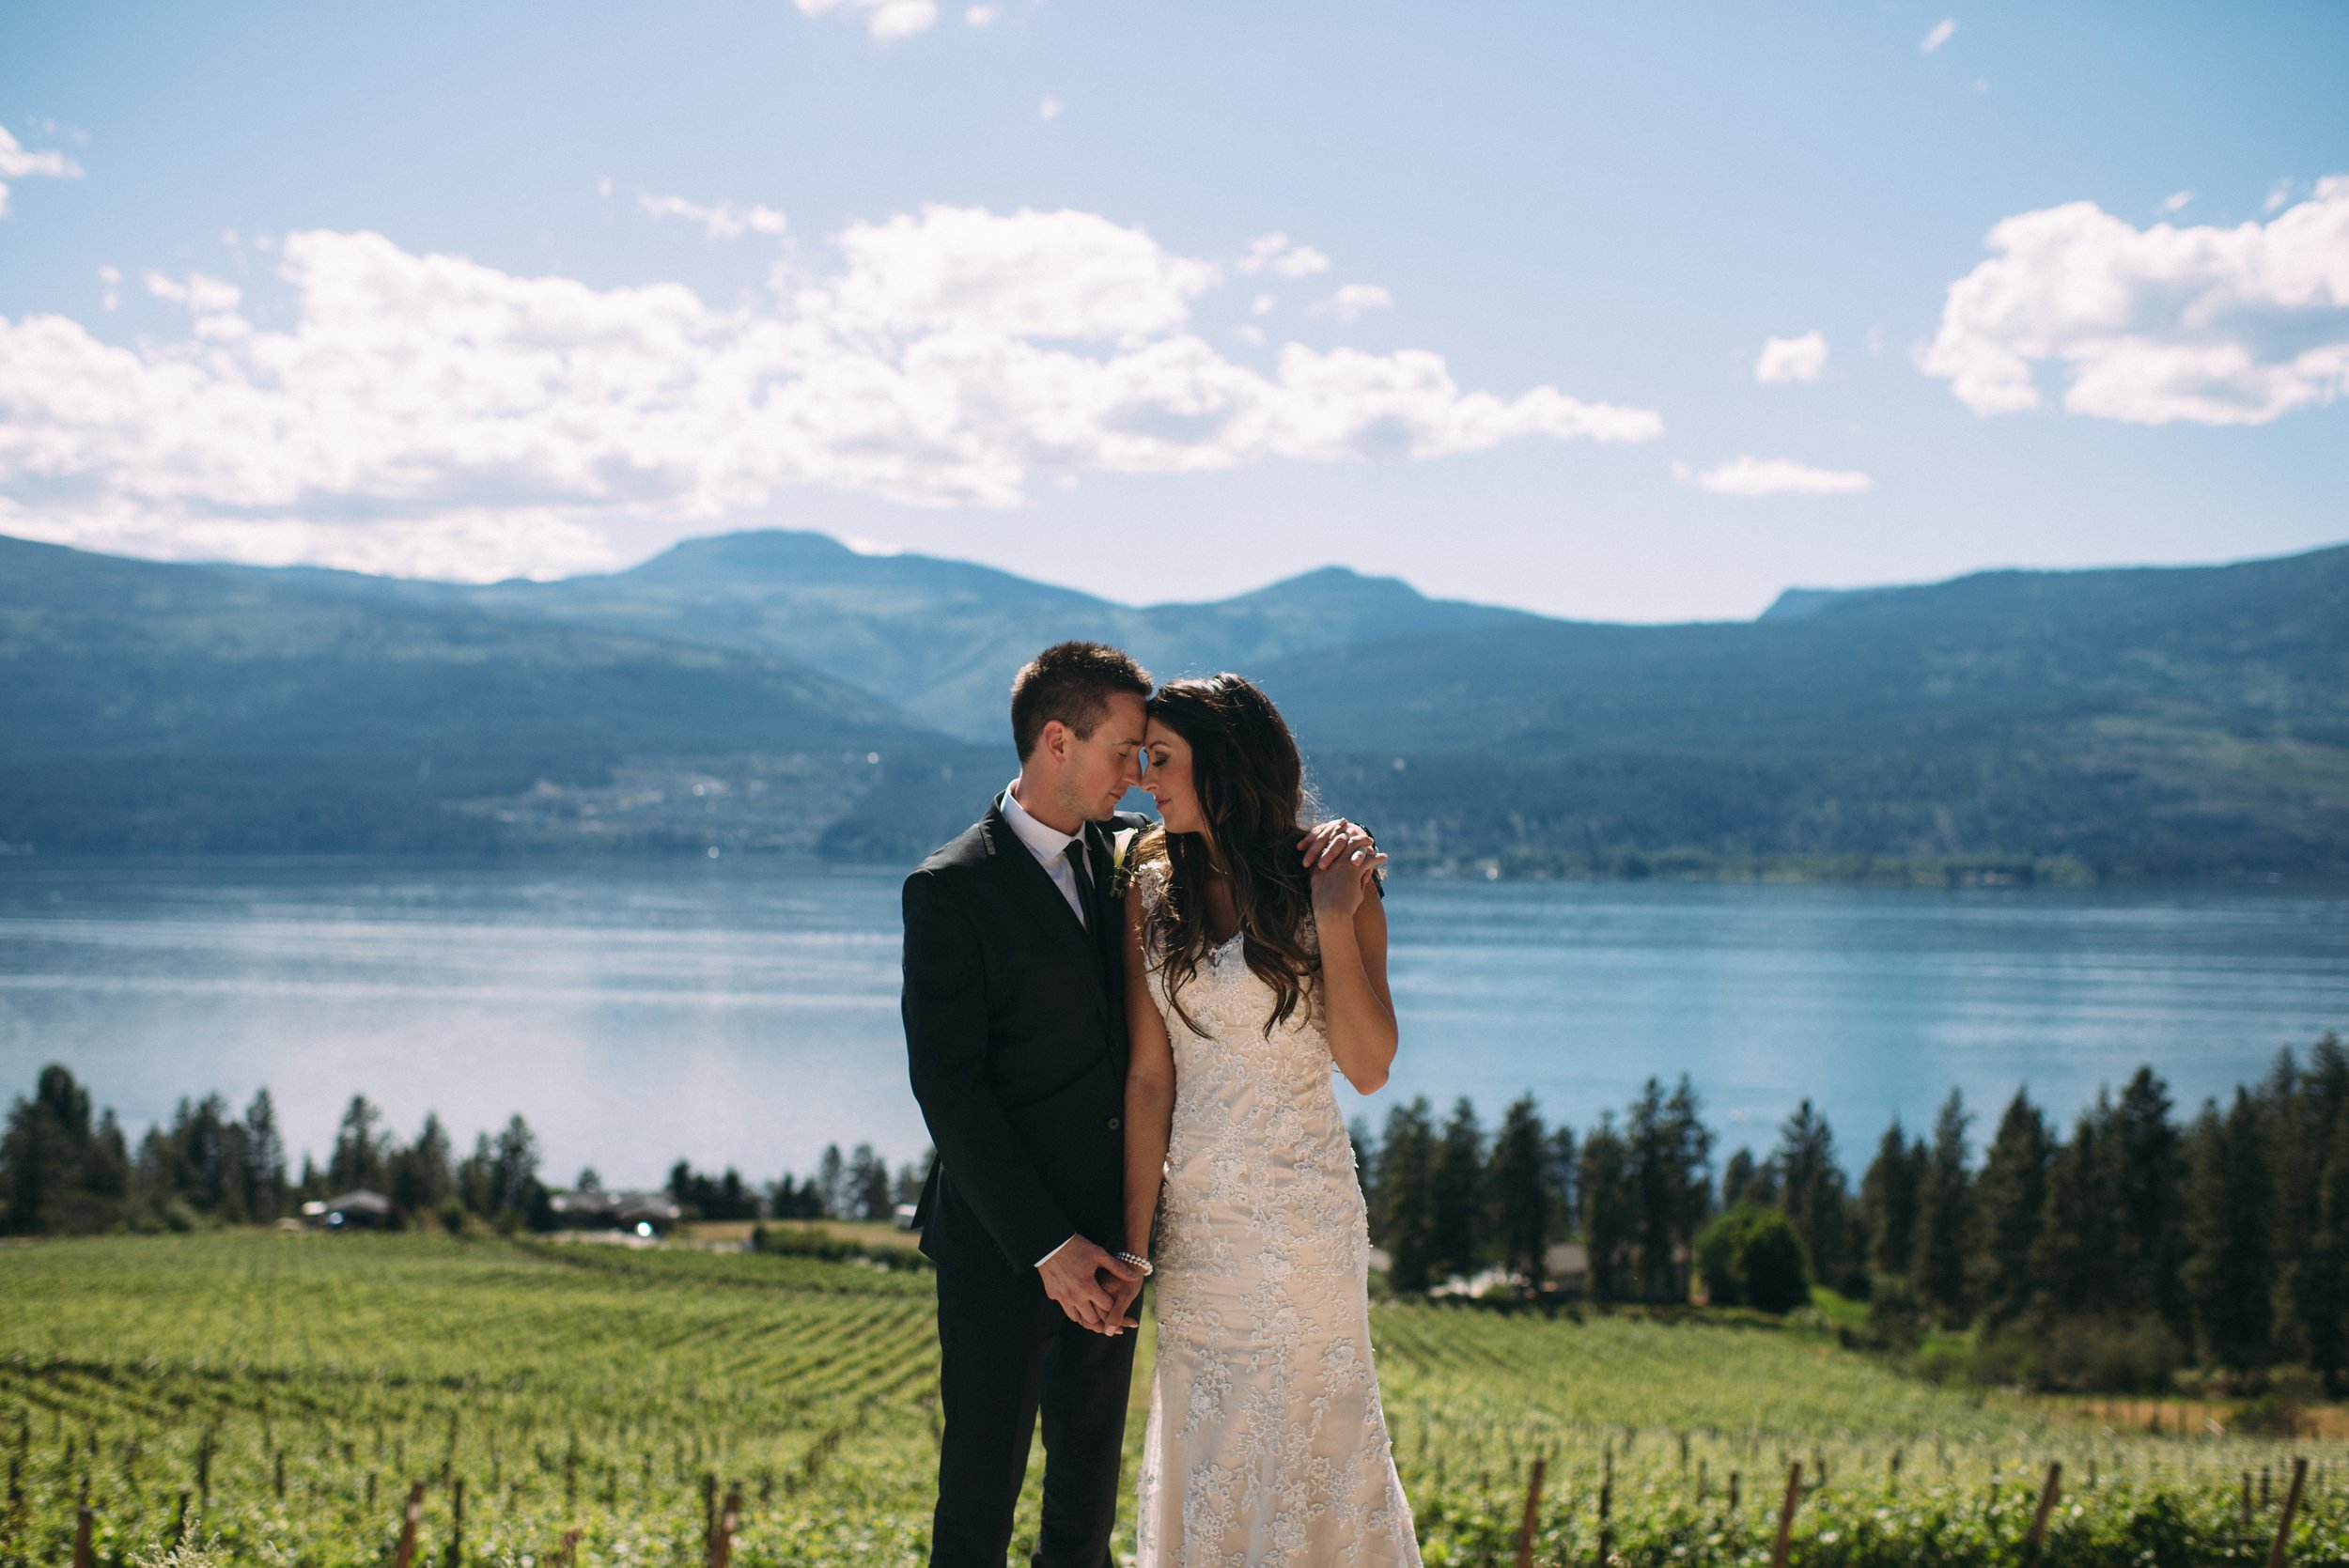 kaihla_tonai_intimate_wedding_elopement_photographer_3889